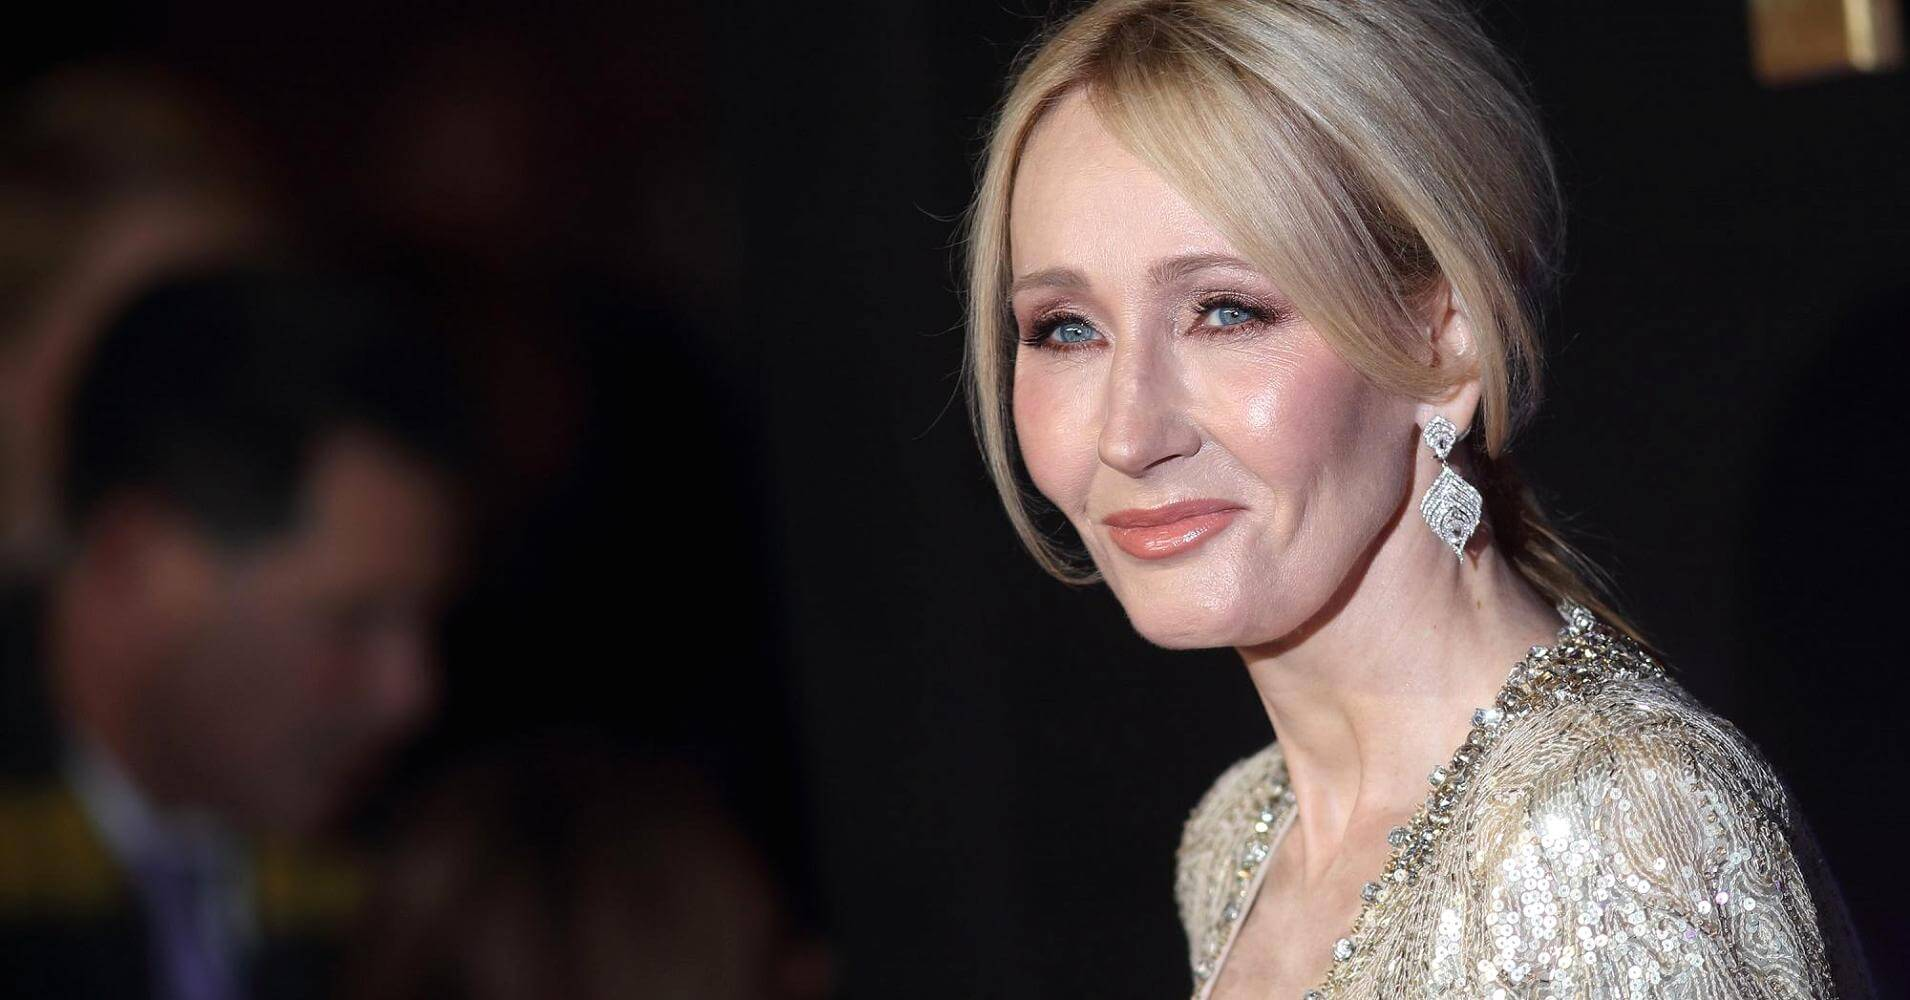 JK Rowling Has Already Started Working On Fantastic Beasts 3